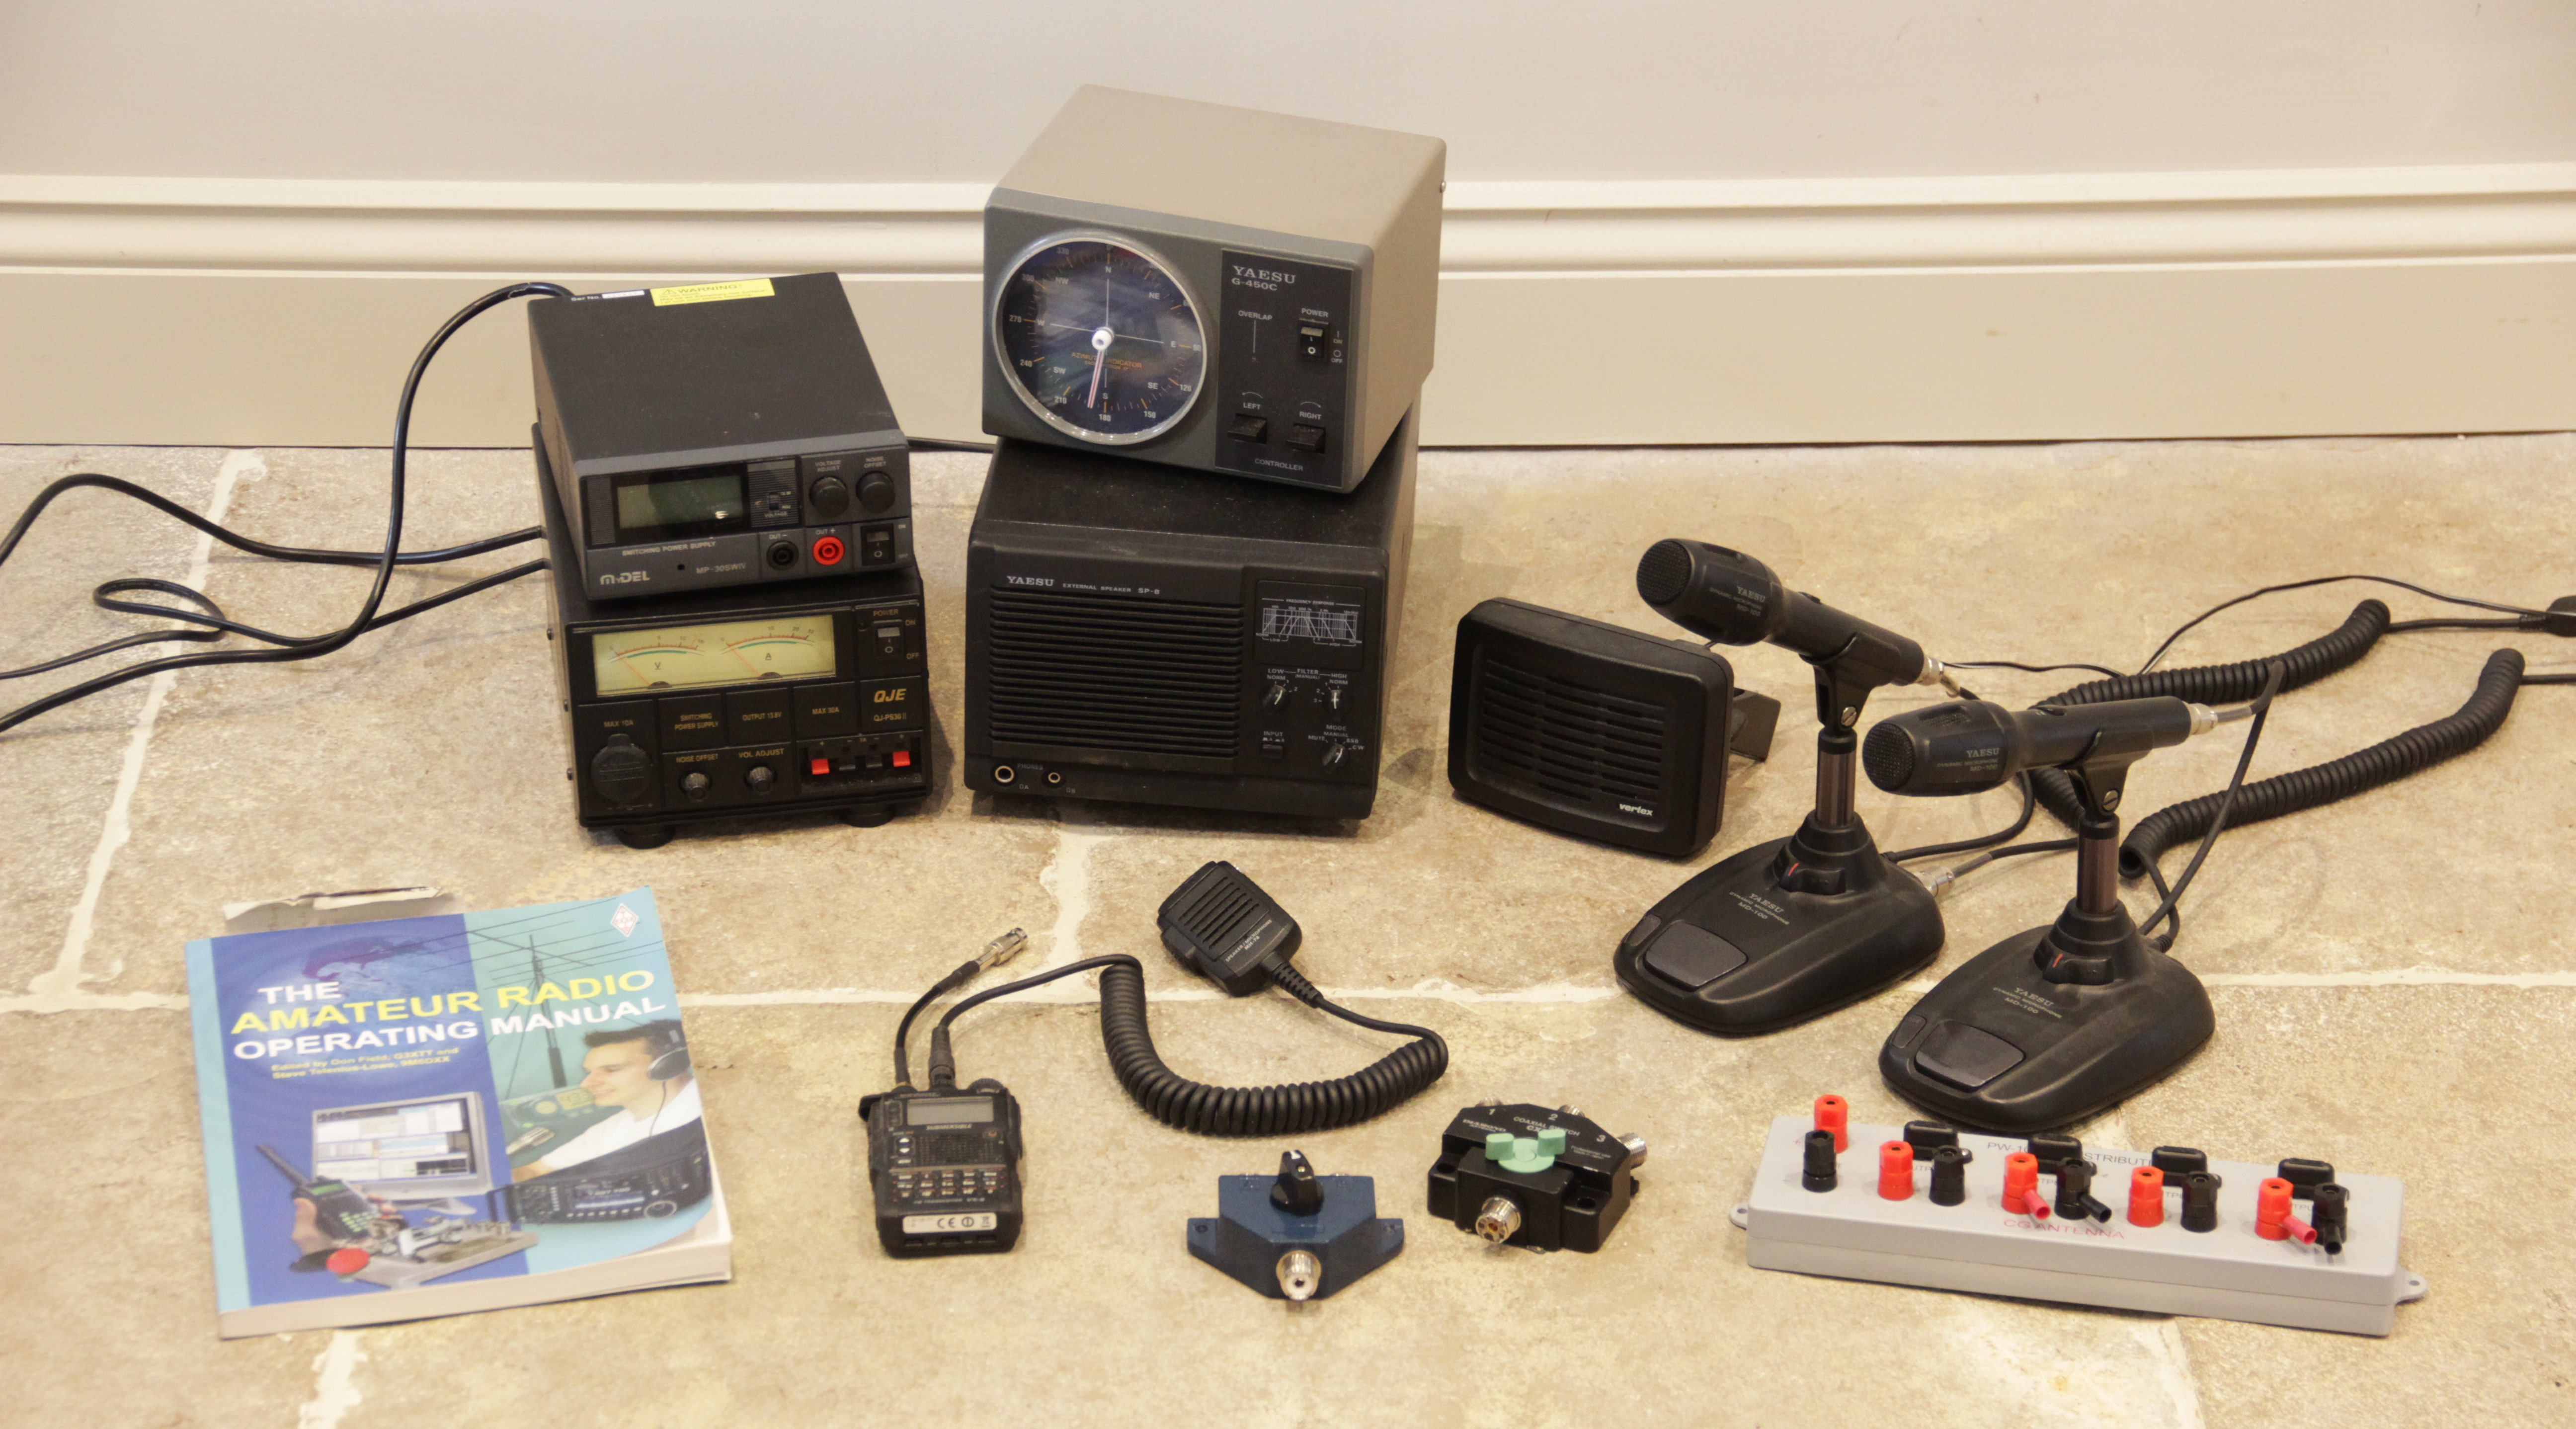 A collection of amateur 'ham' radio equipment, comprising: a Yaesu FTDX 3000 transceiver, an ATU 897 - Image 12 of 13